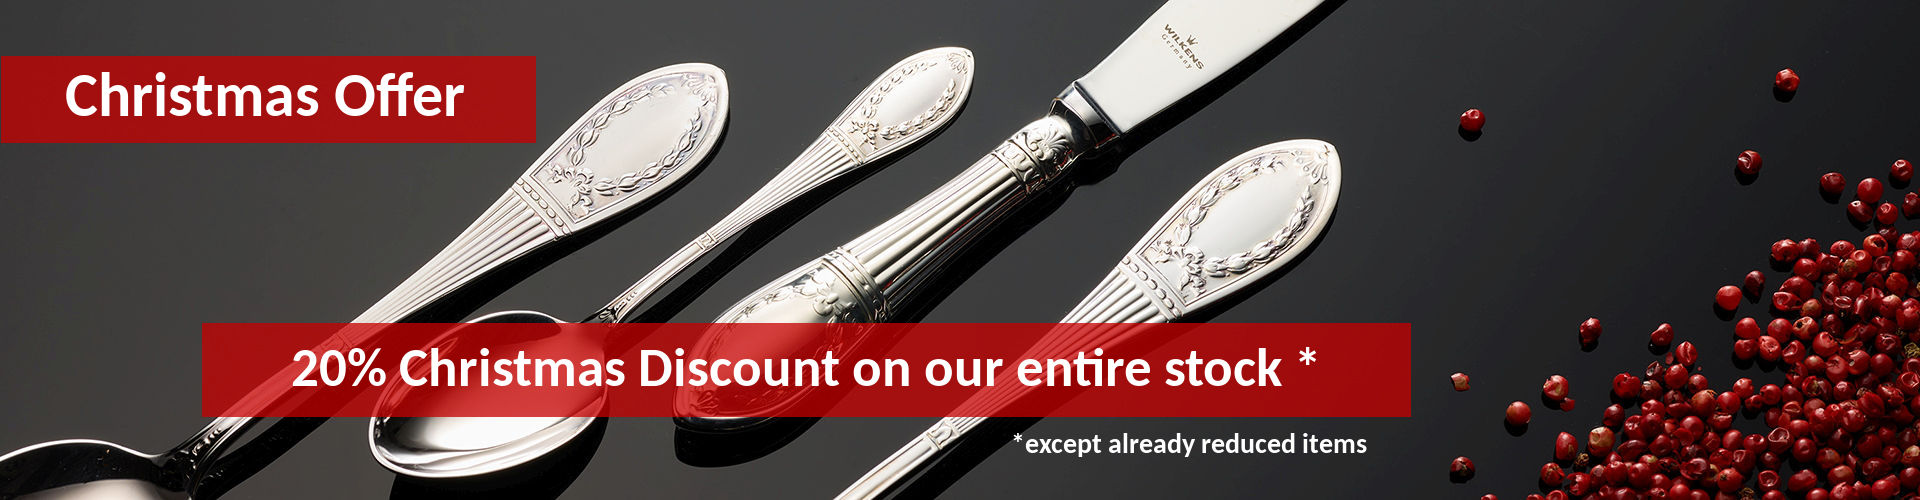 Christmas Offer: 20% Christmas Discount on our entire stock – except already reduced items